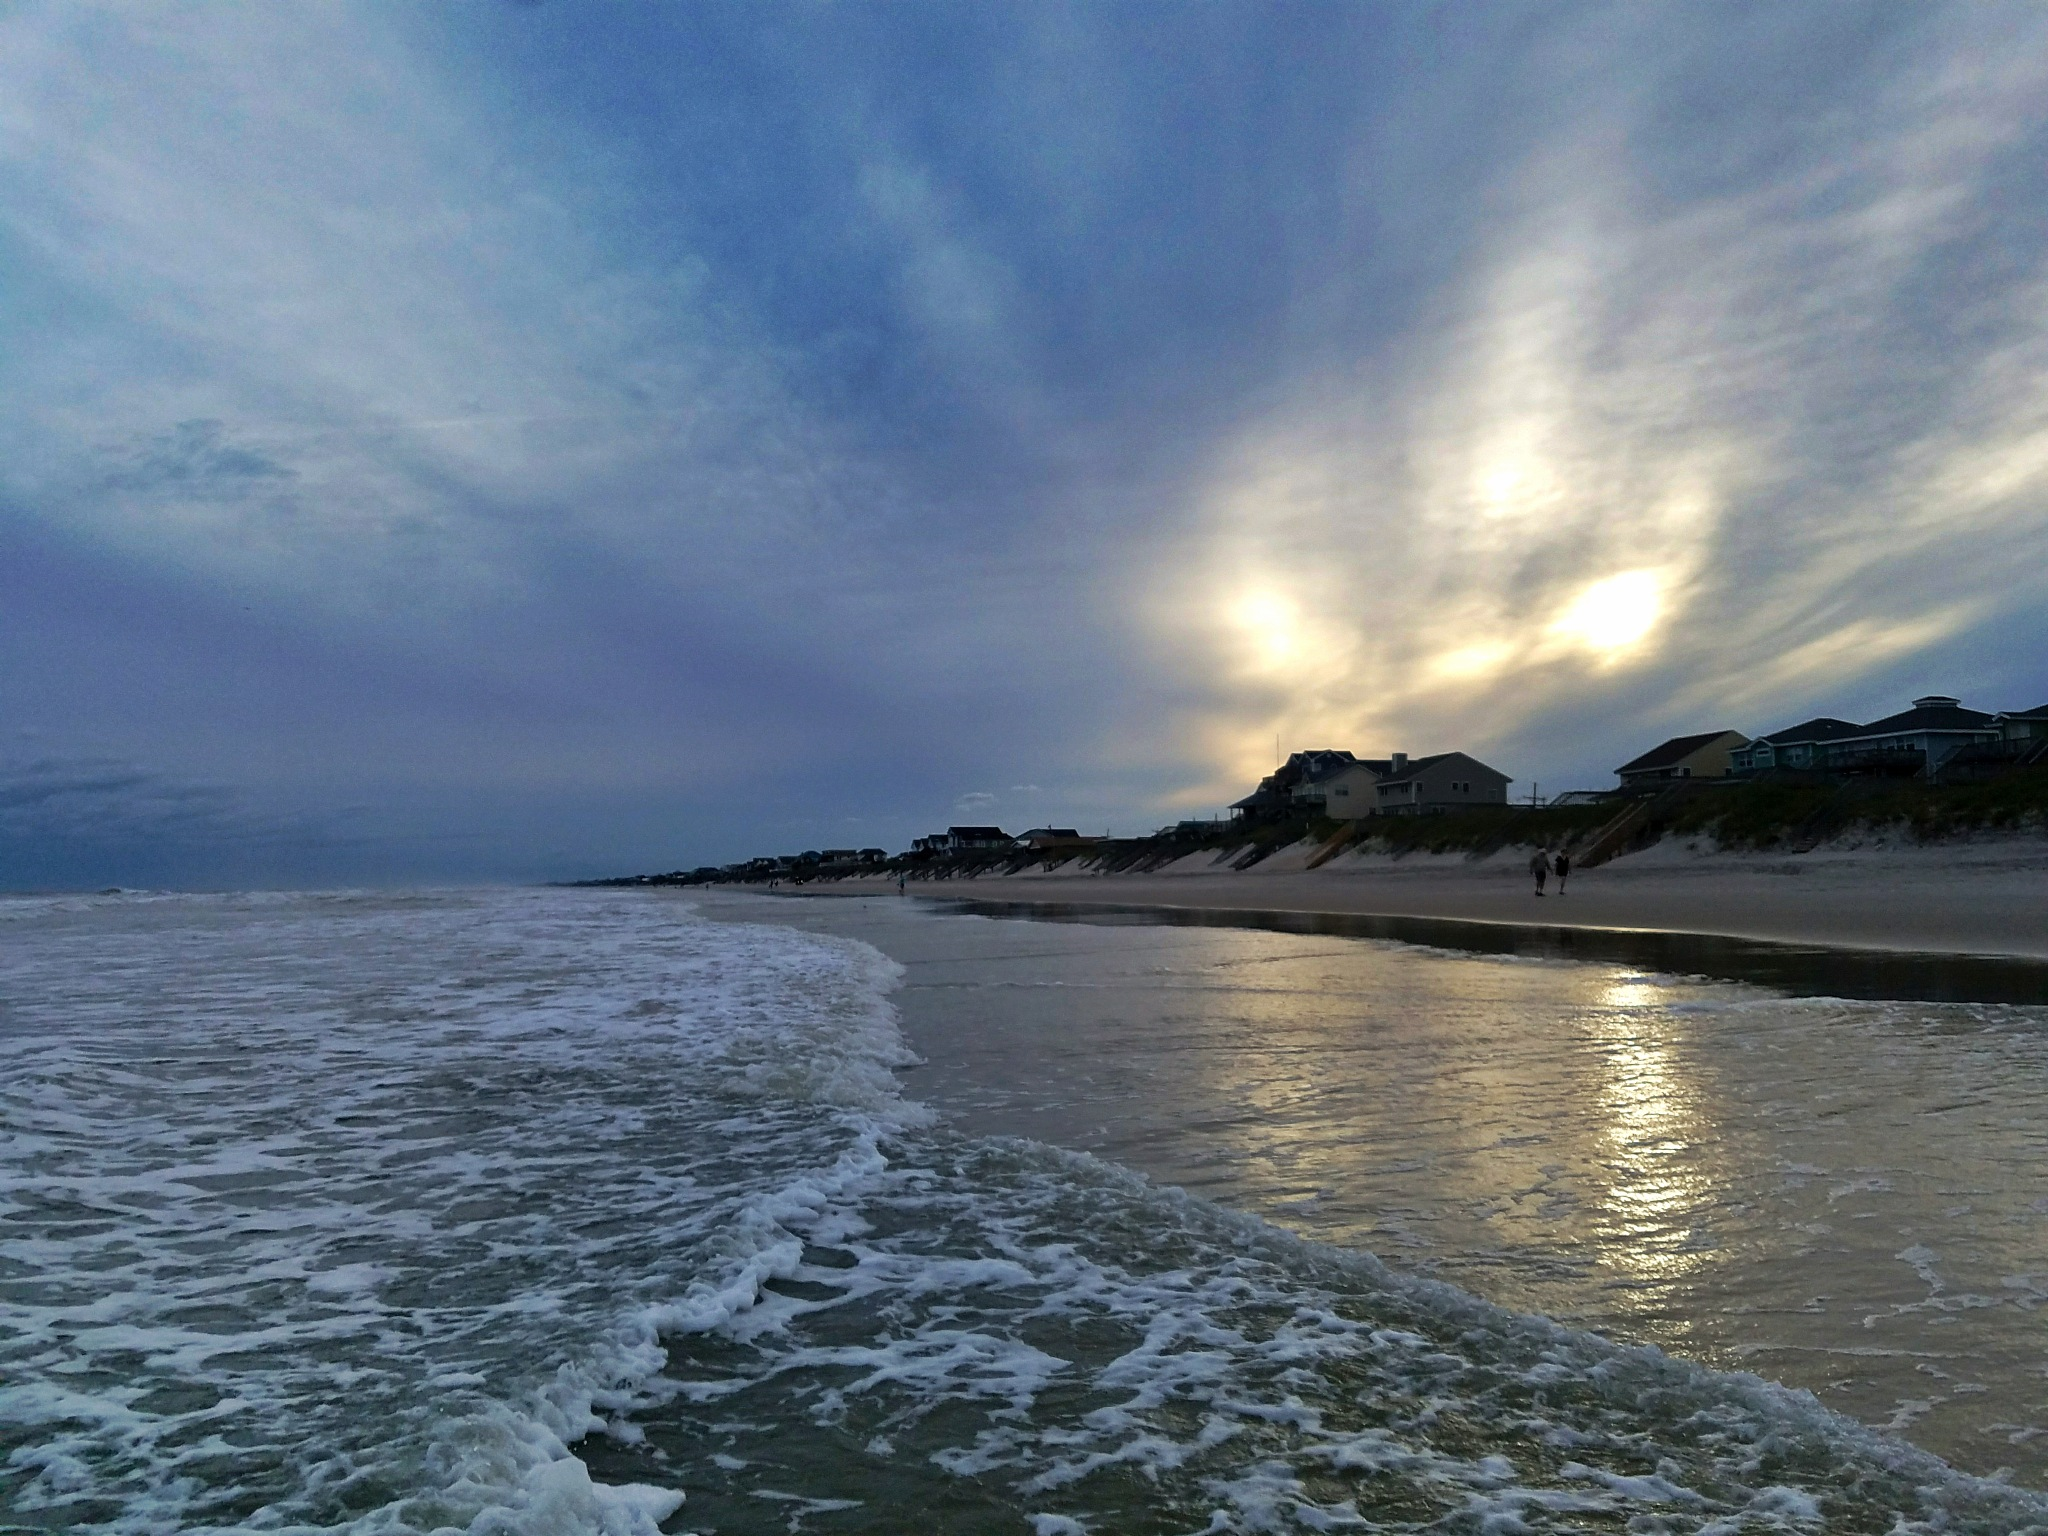 The three suns of Surf City by JayeEryk